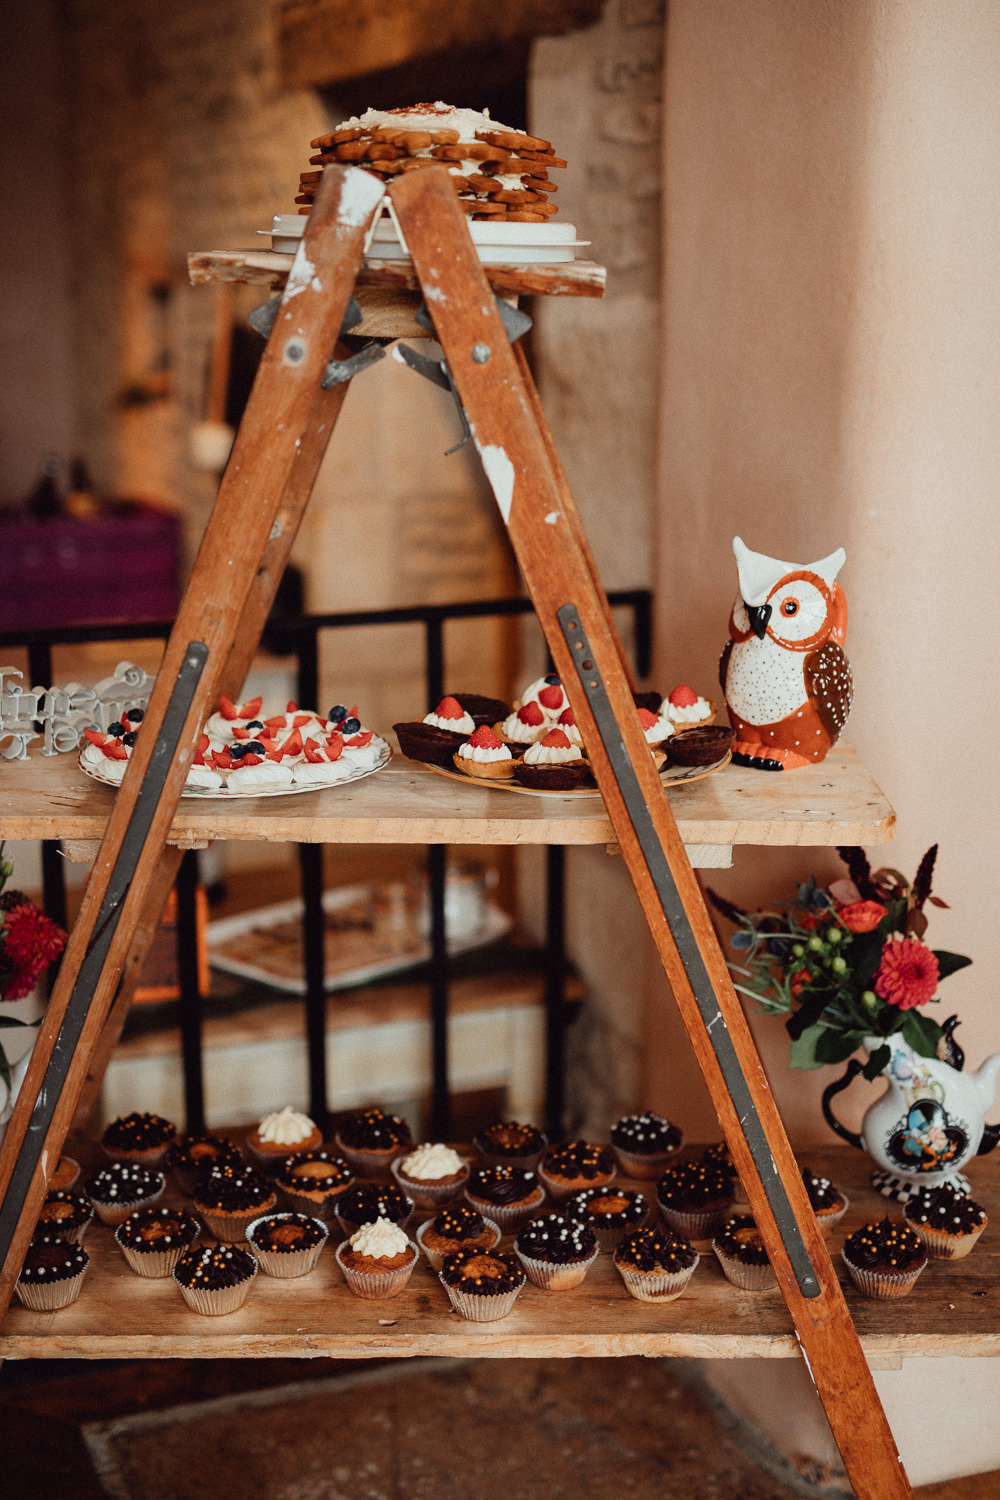 Wooden Ladder Dessert Table Cupcakes Oxleaze Barn Wedding Emily and Steve Photography